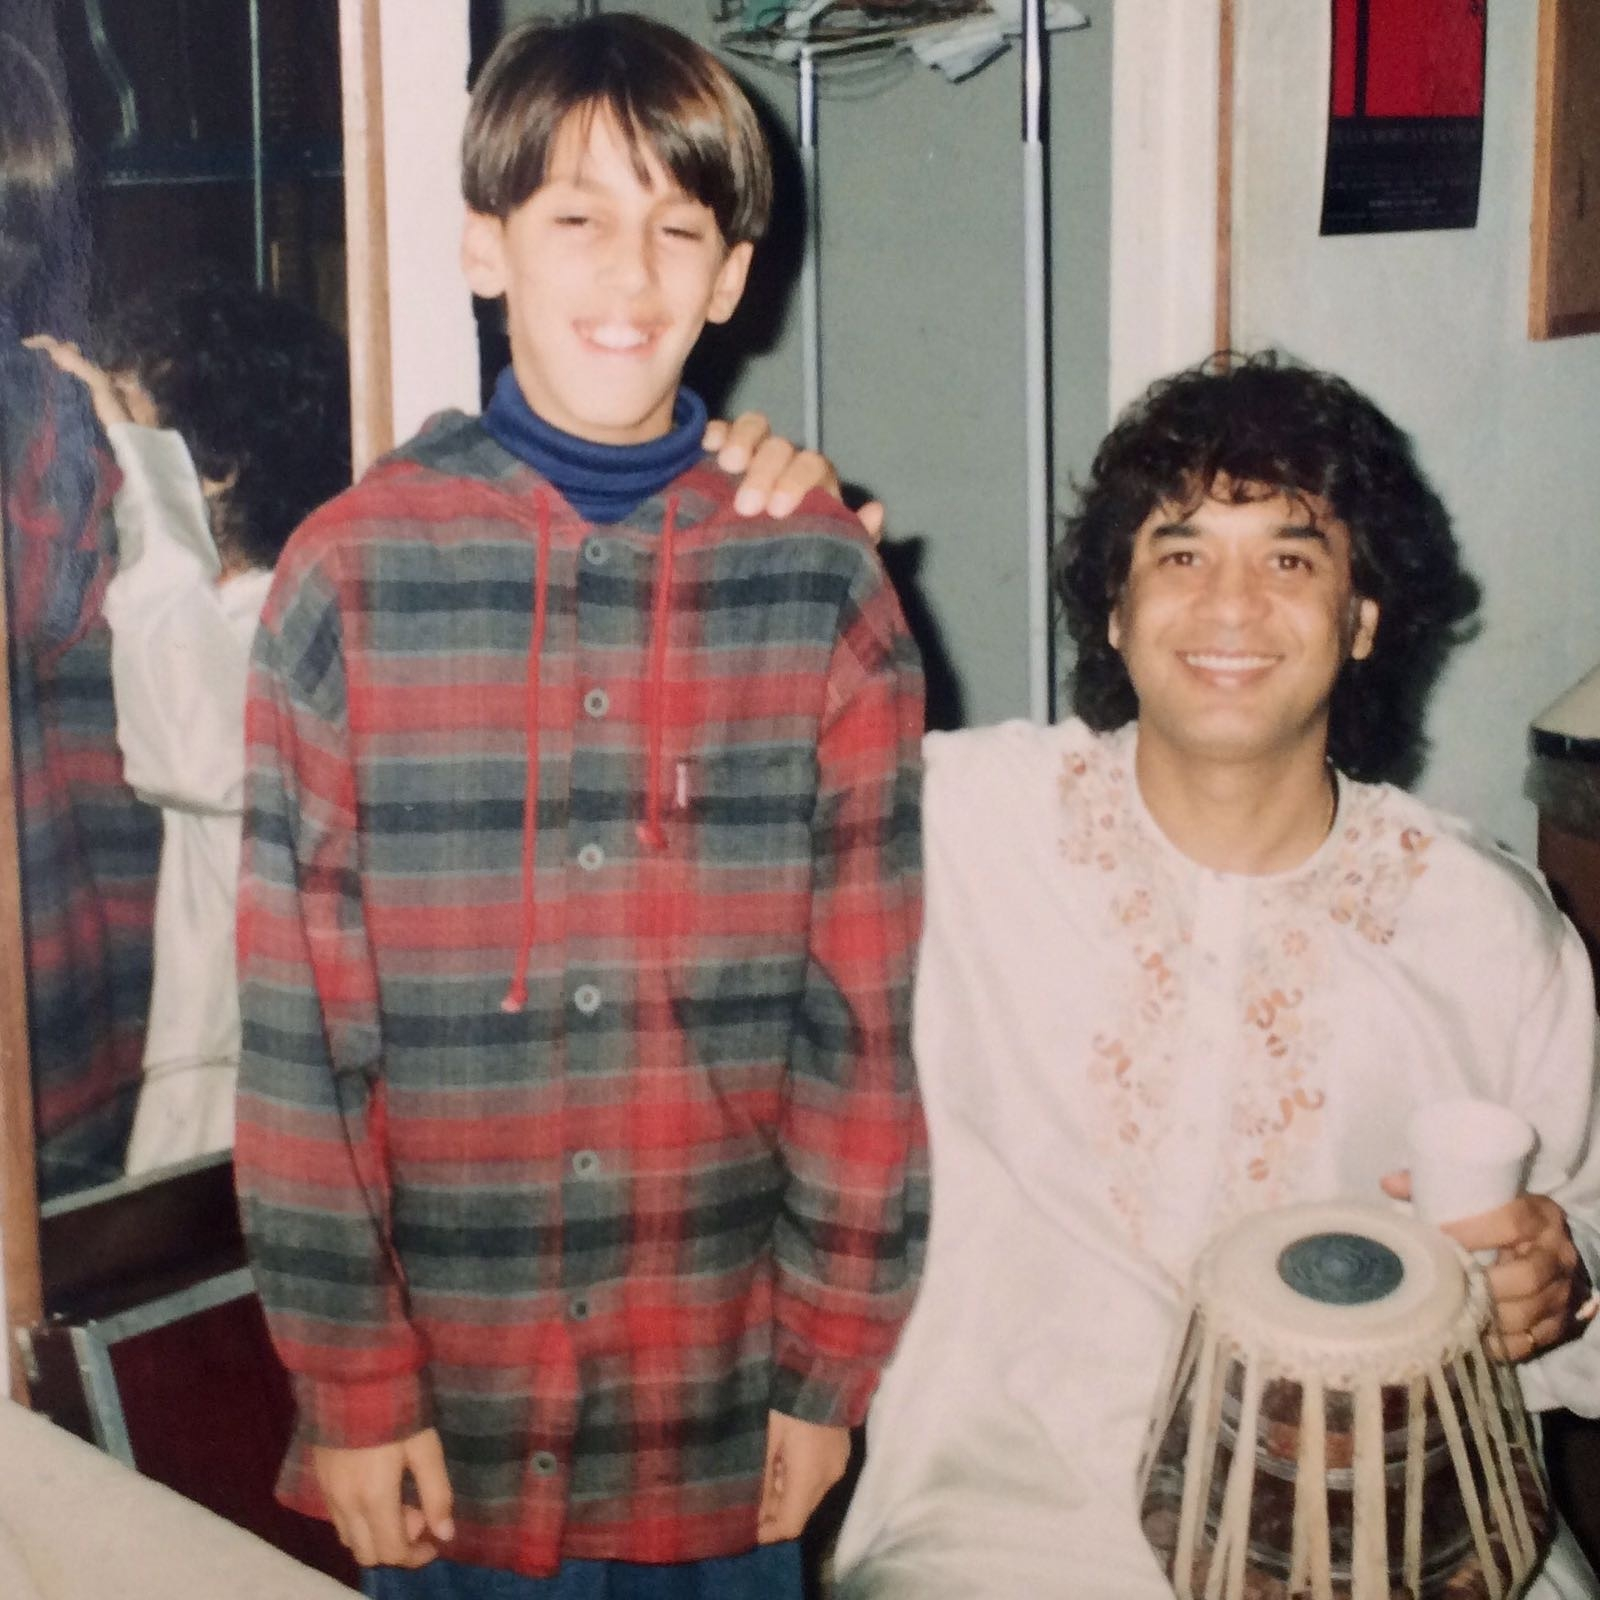 1994 - My Guru, Ustad Zakir Hussain and I backstage @Julia Morgan Theater Berkeley, CA